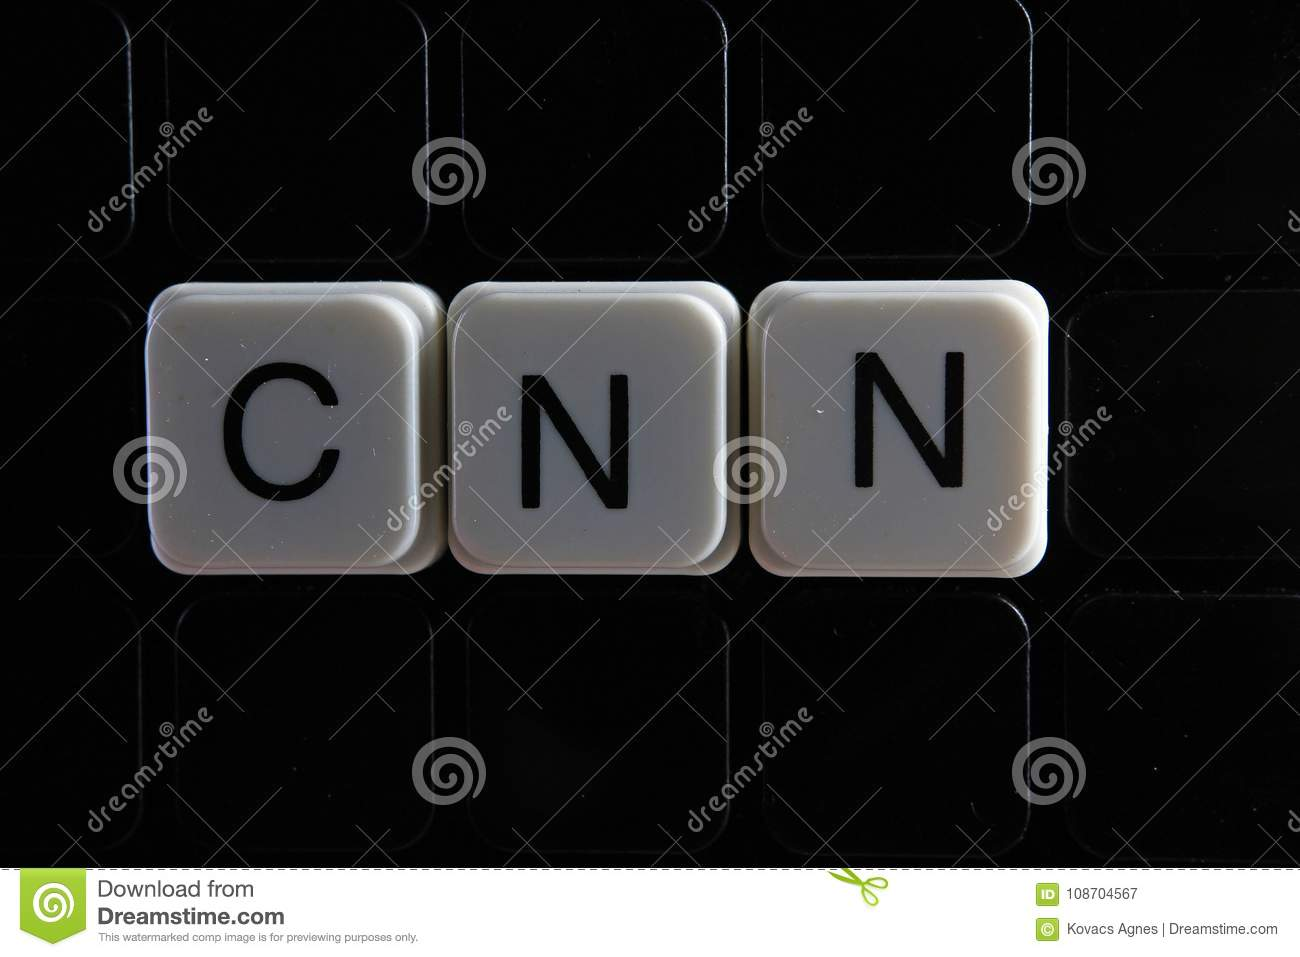 Cnn Control Text Word Title Caption Label Cover Backdrop Background